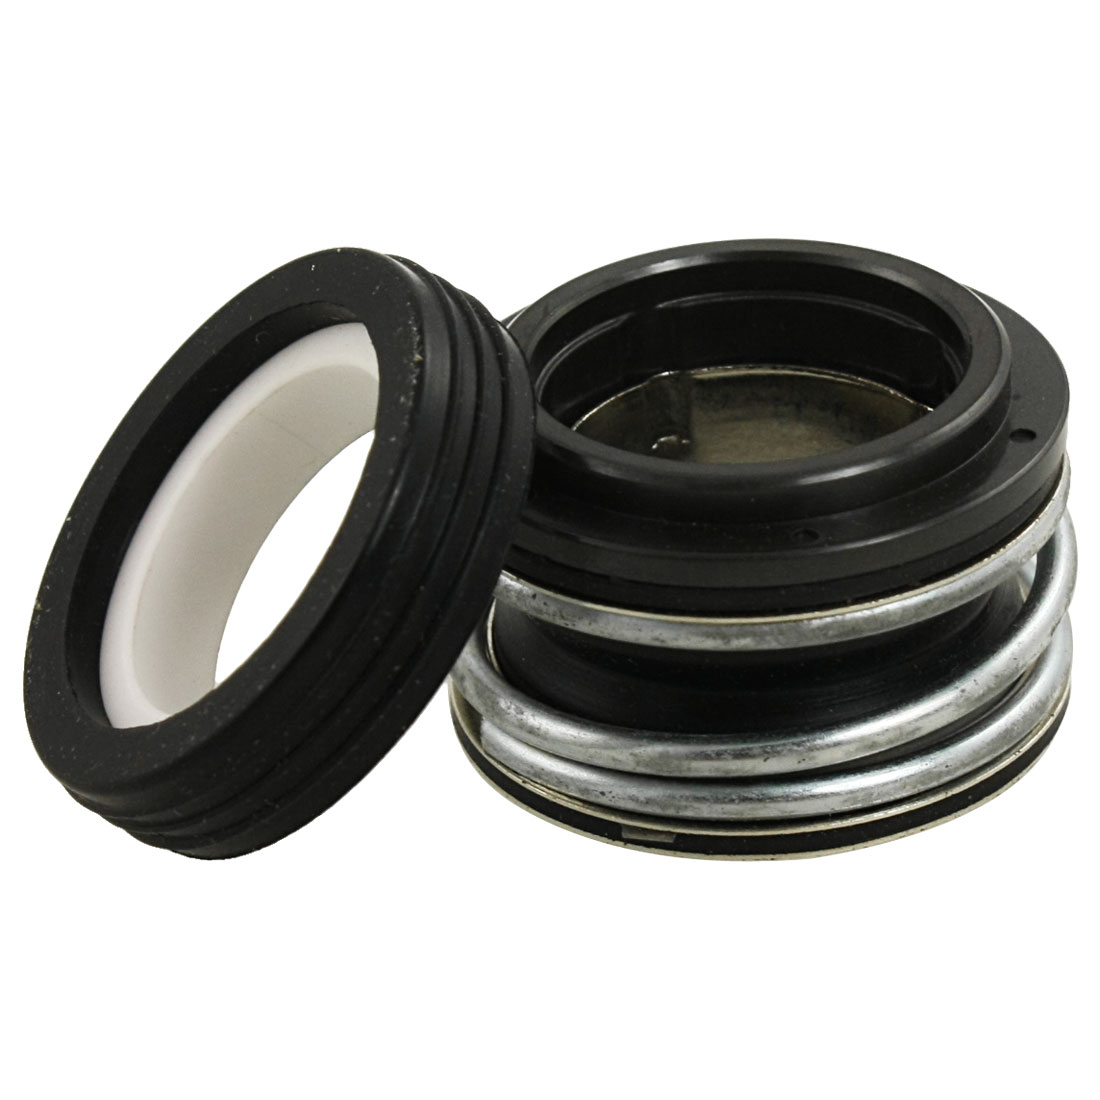 Water Pump Coil Spring Rubber Bellows Mechanical Shaft Seal 25mm